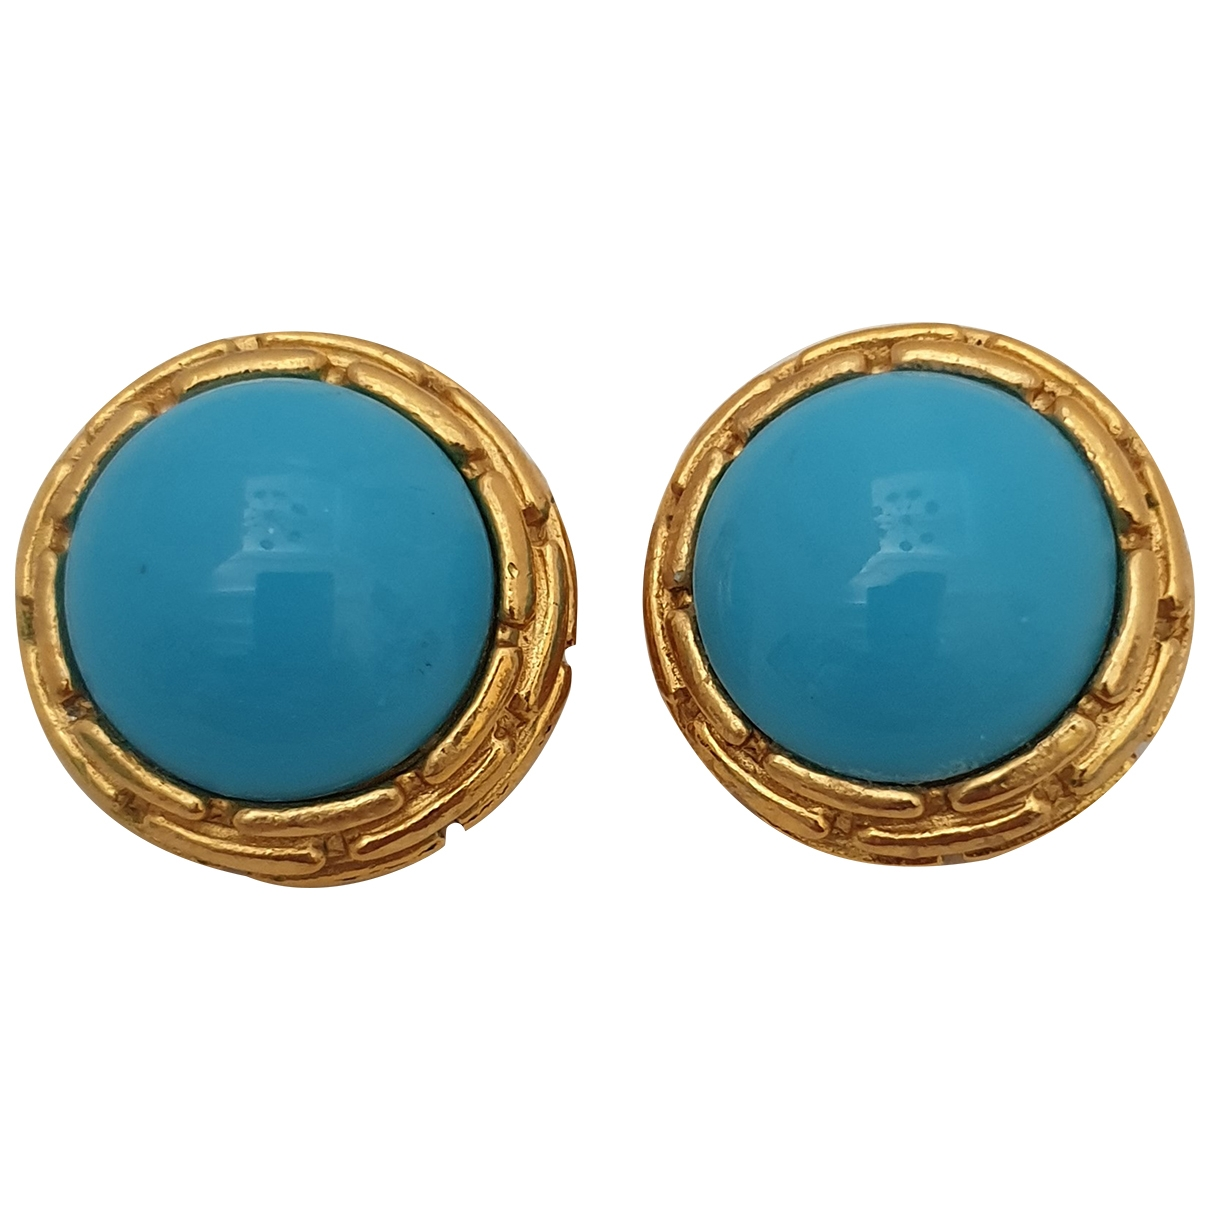 Chanel \N Turquoise Metal Earrings for Women \N